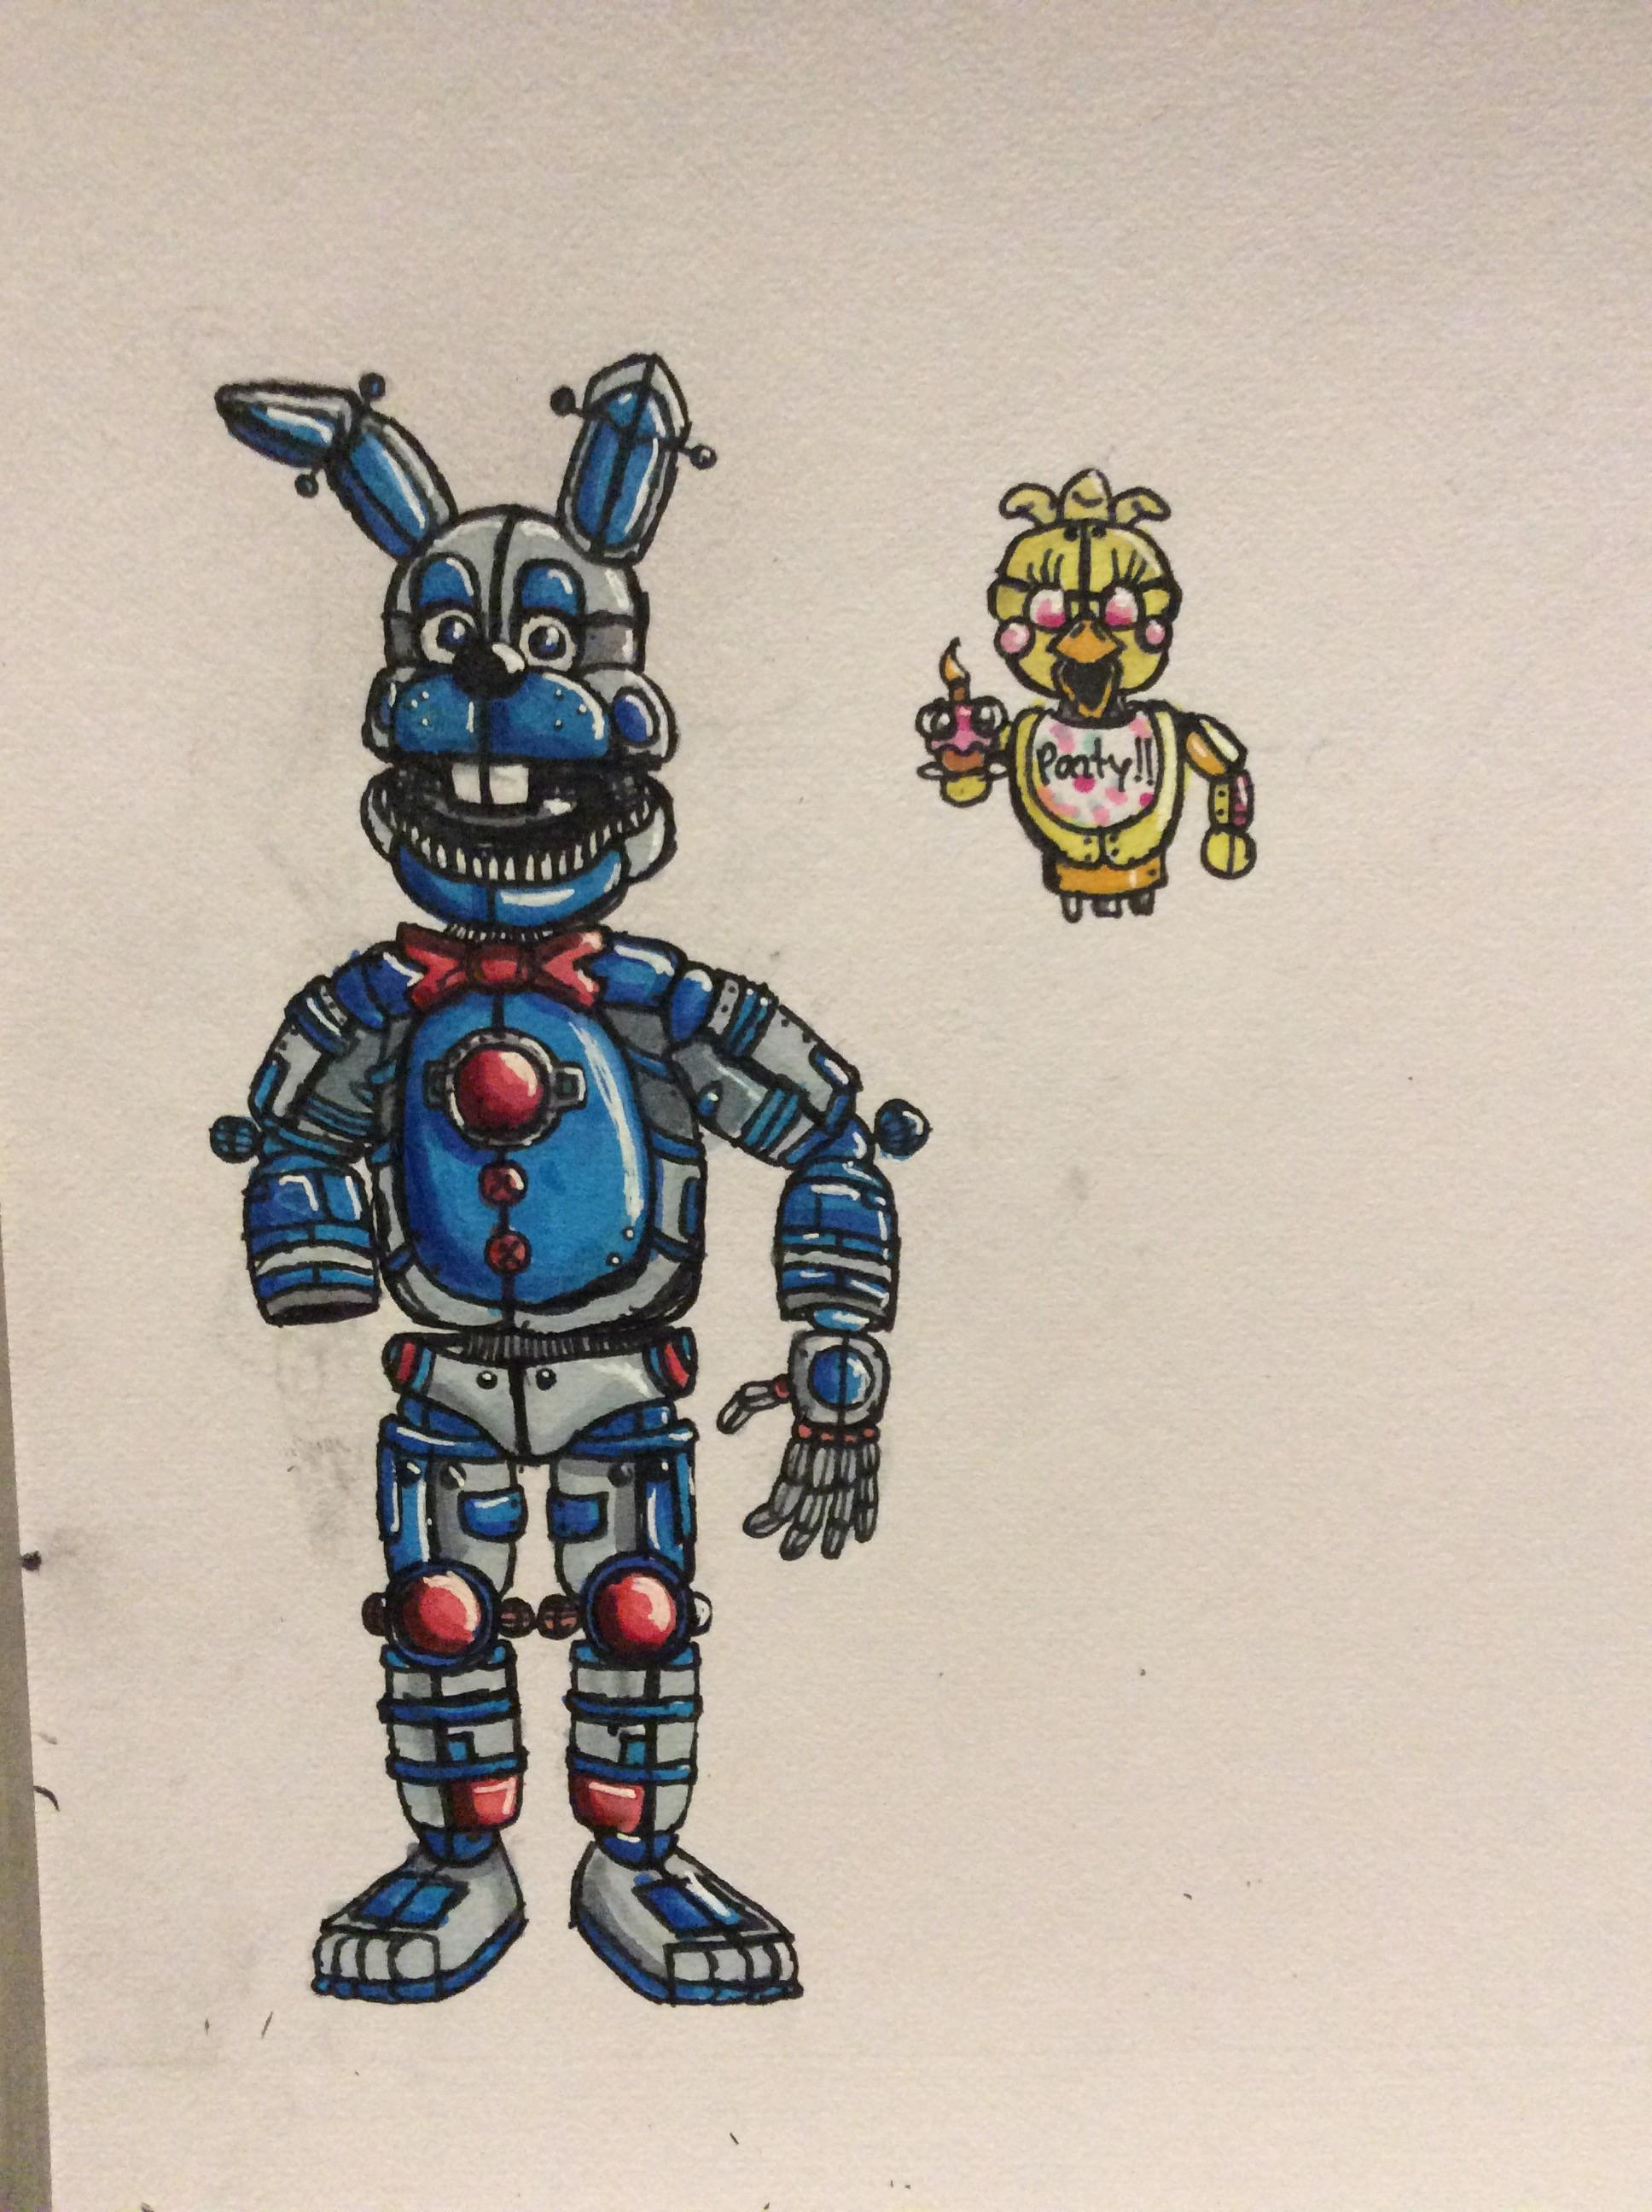 Diner Delivery Diner Delivery Bonnie And Chichi Fivenightsatfreddys